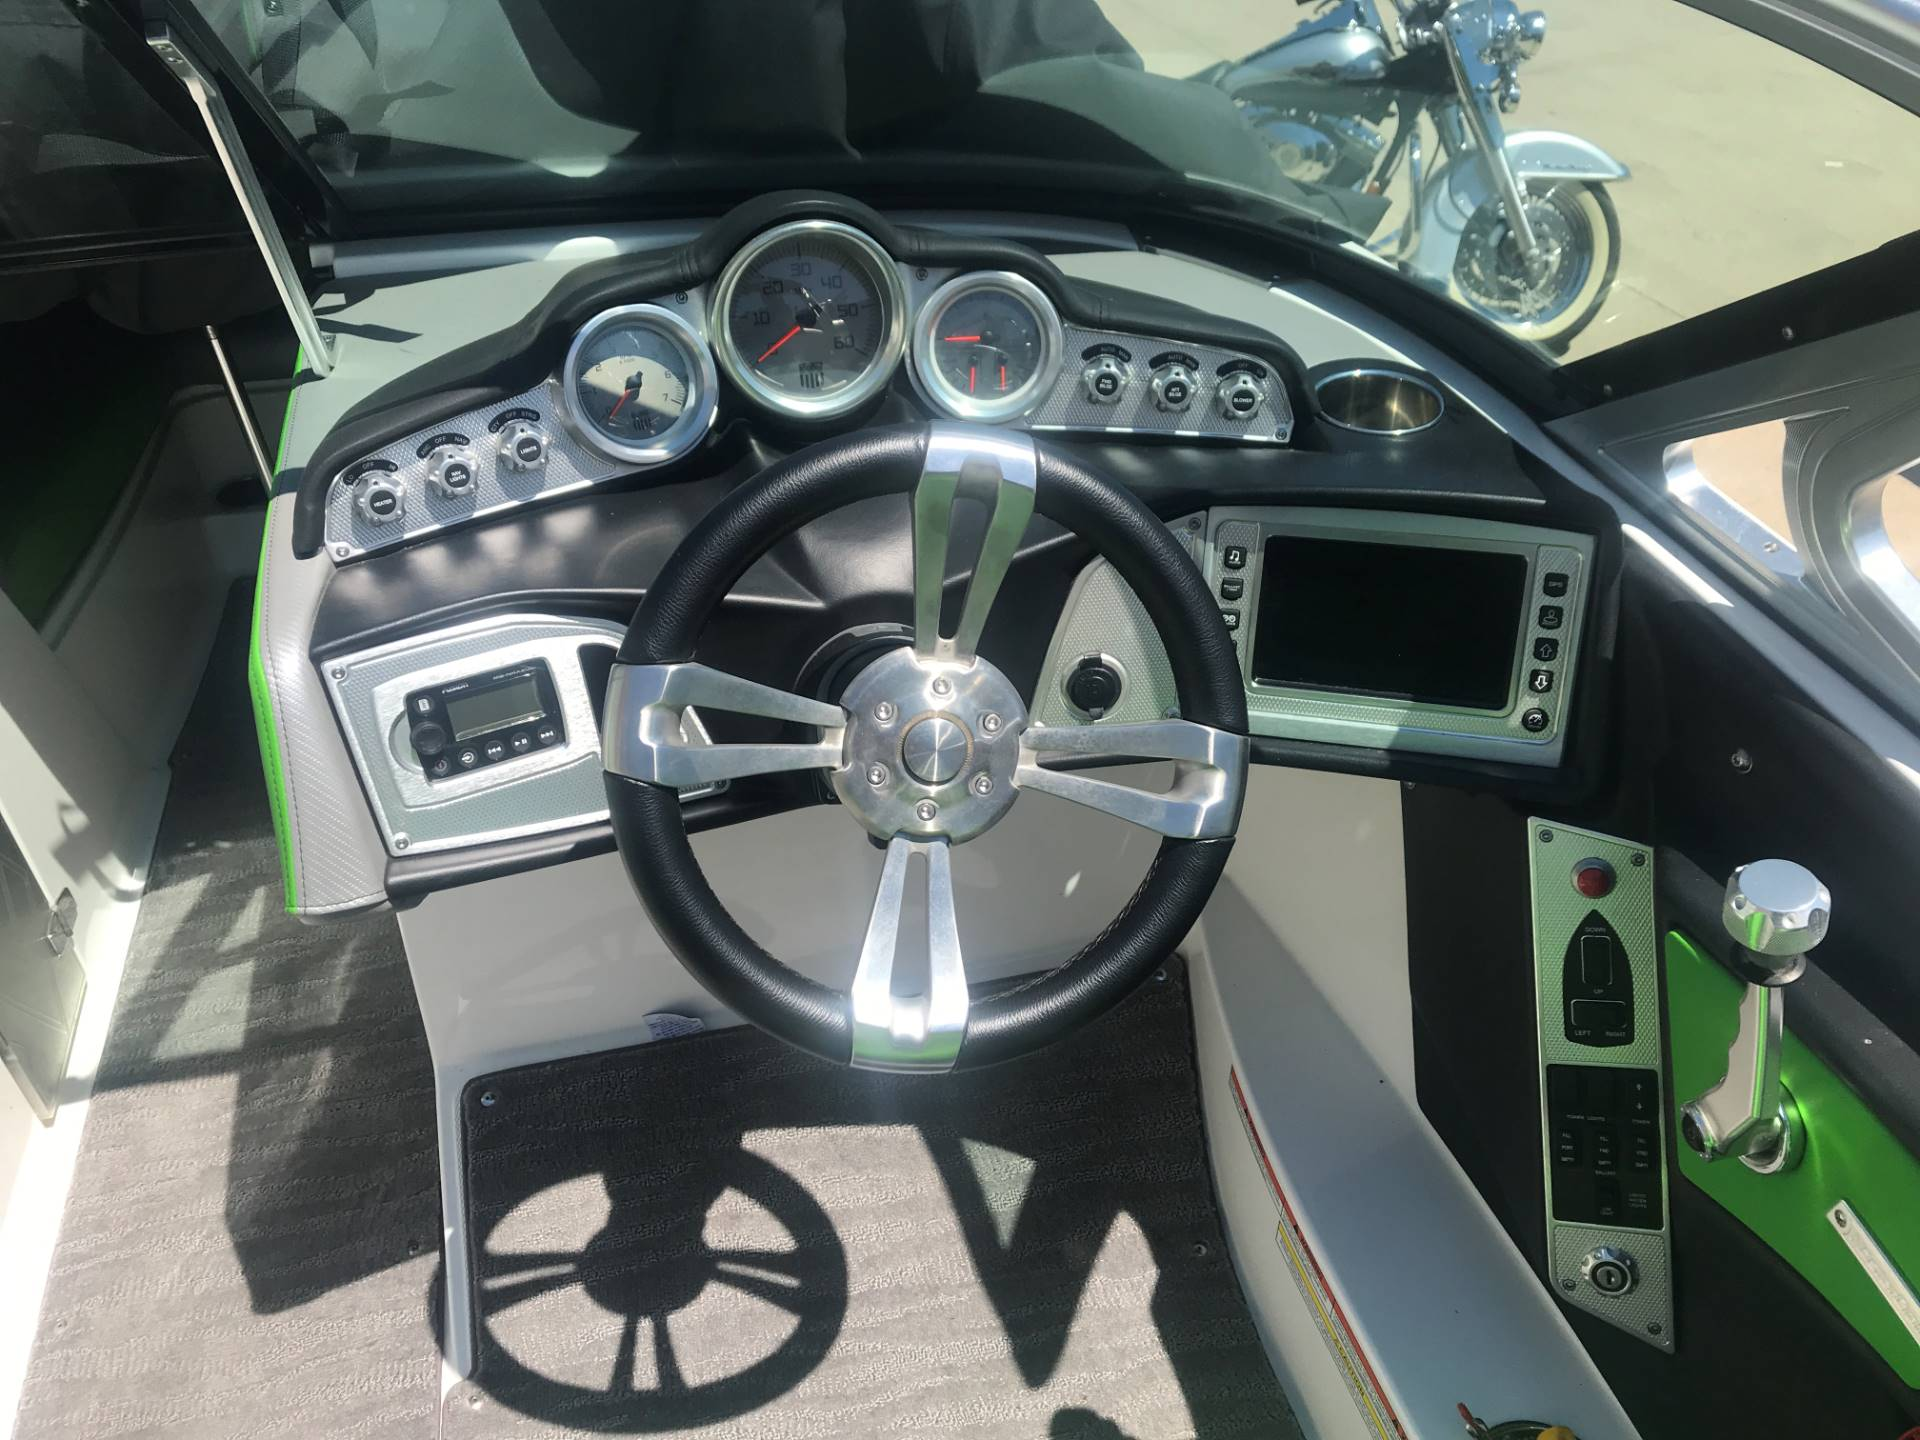 2014 Mastercraft X10 in Manitou Beach, Michigan